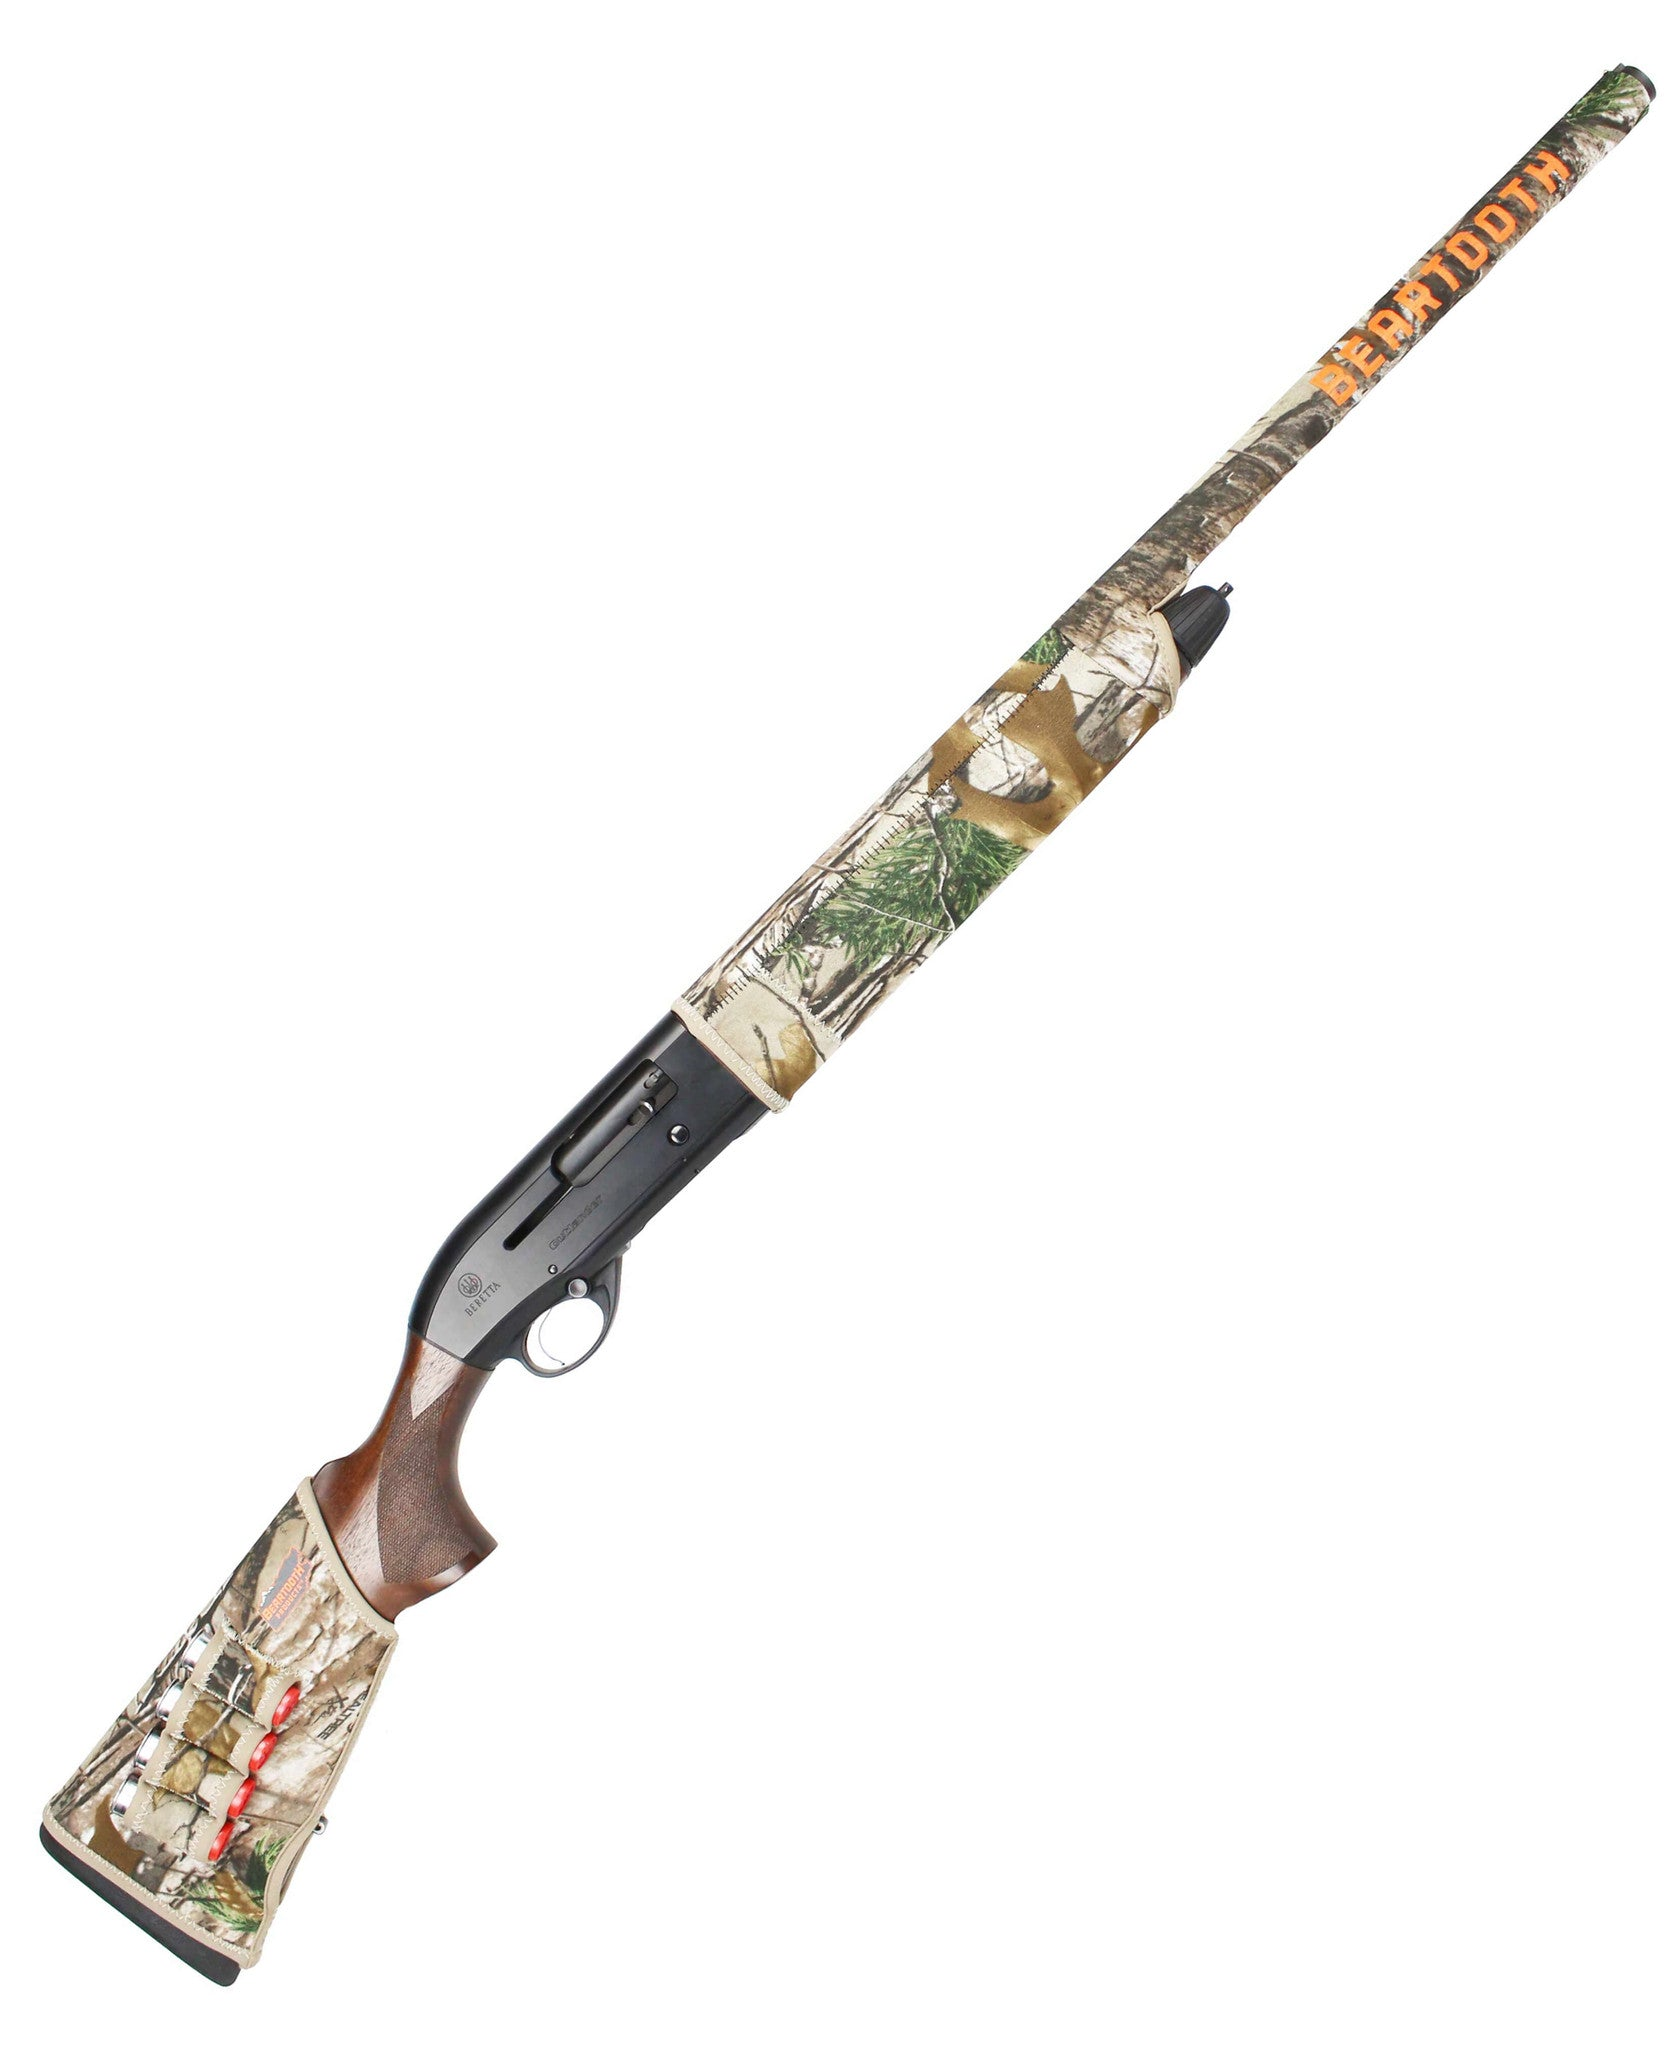 GUNJACKET - Semi-Auto Shotgun Model in Realtree Xtra